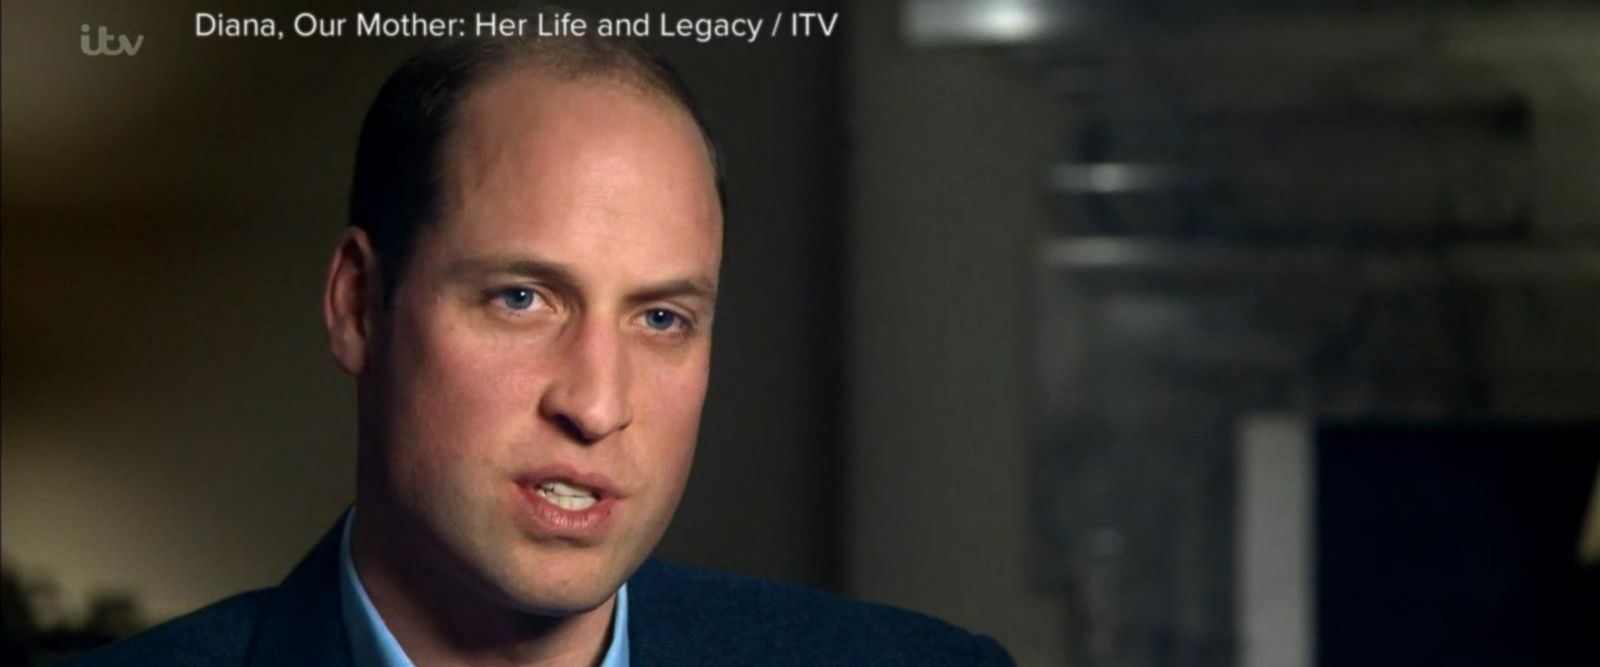 VIDEO: Prince William opens up about how the paparazzi moved his mother to tears